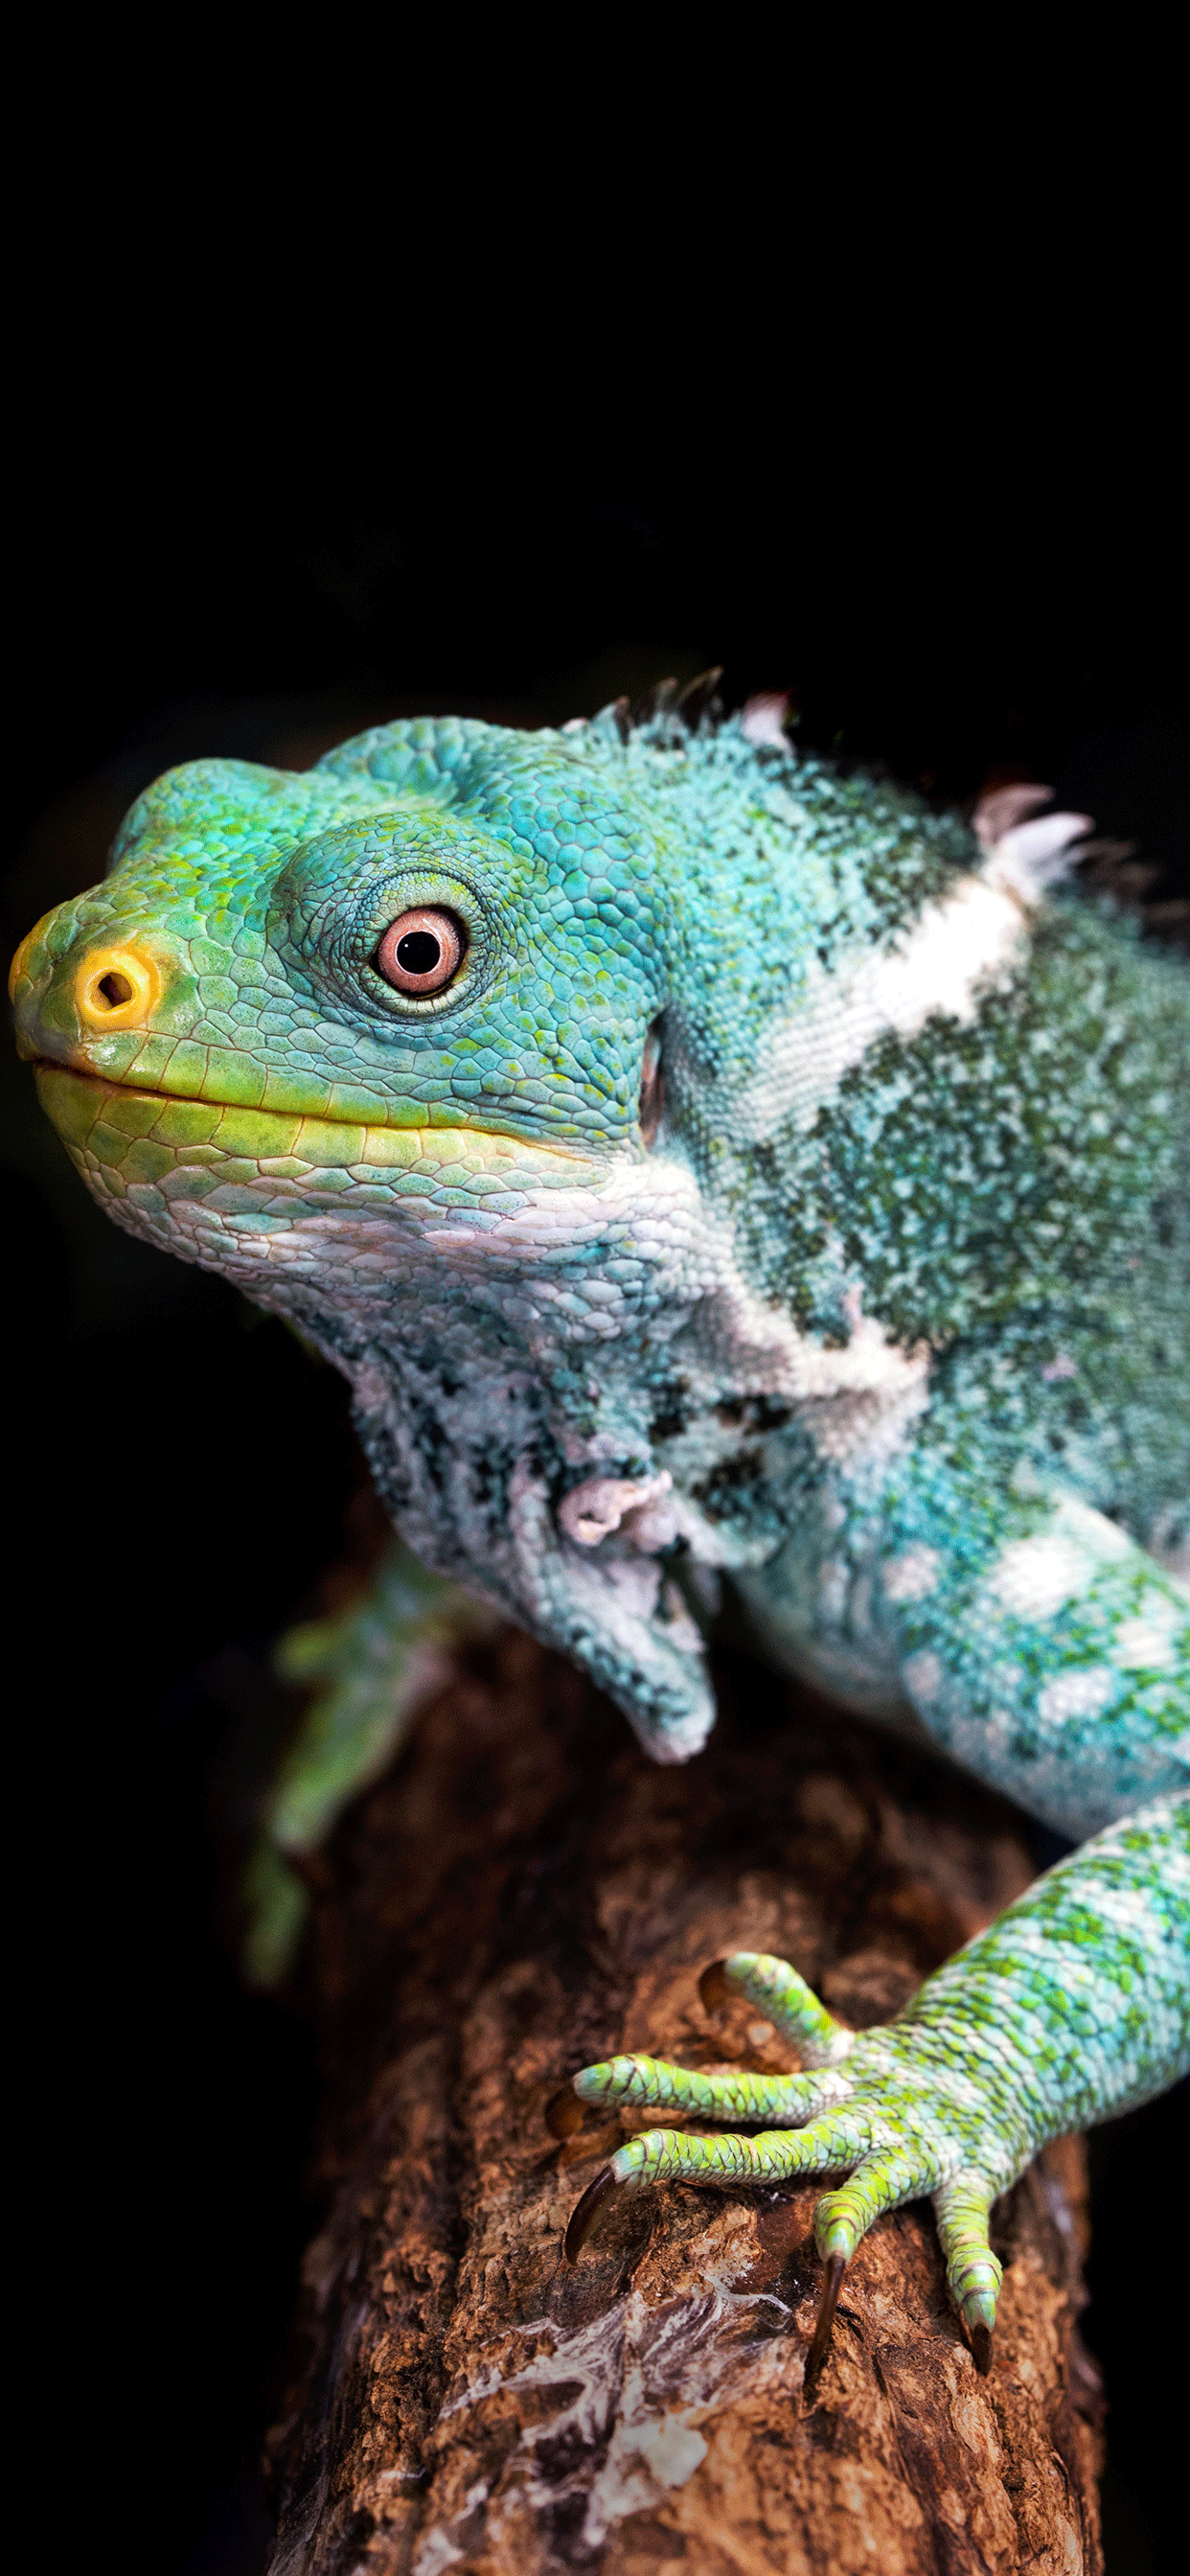 iPhone wallpapers reptiles iguana Fonds d'écran iPhone du 15/04/2019